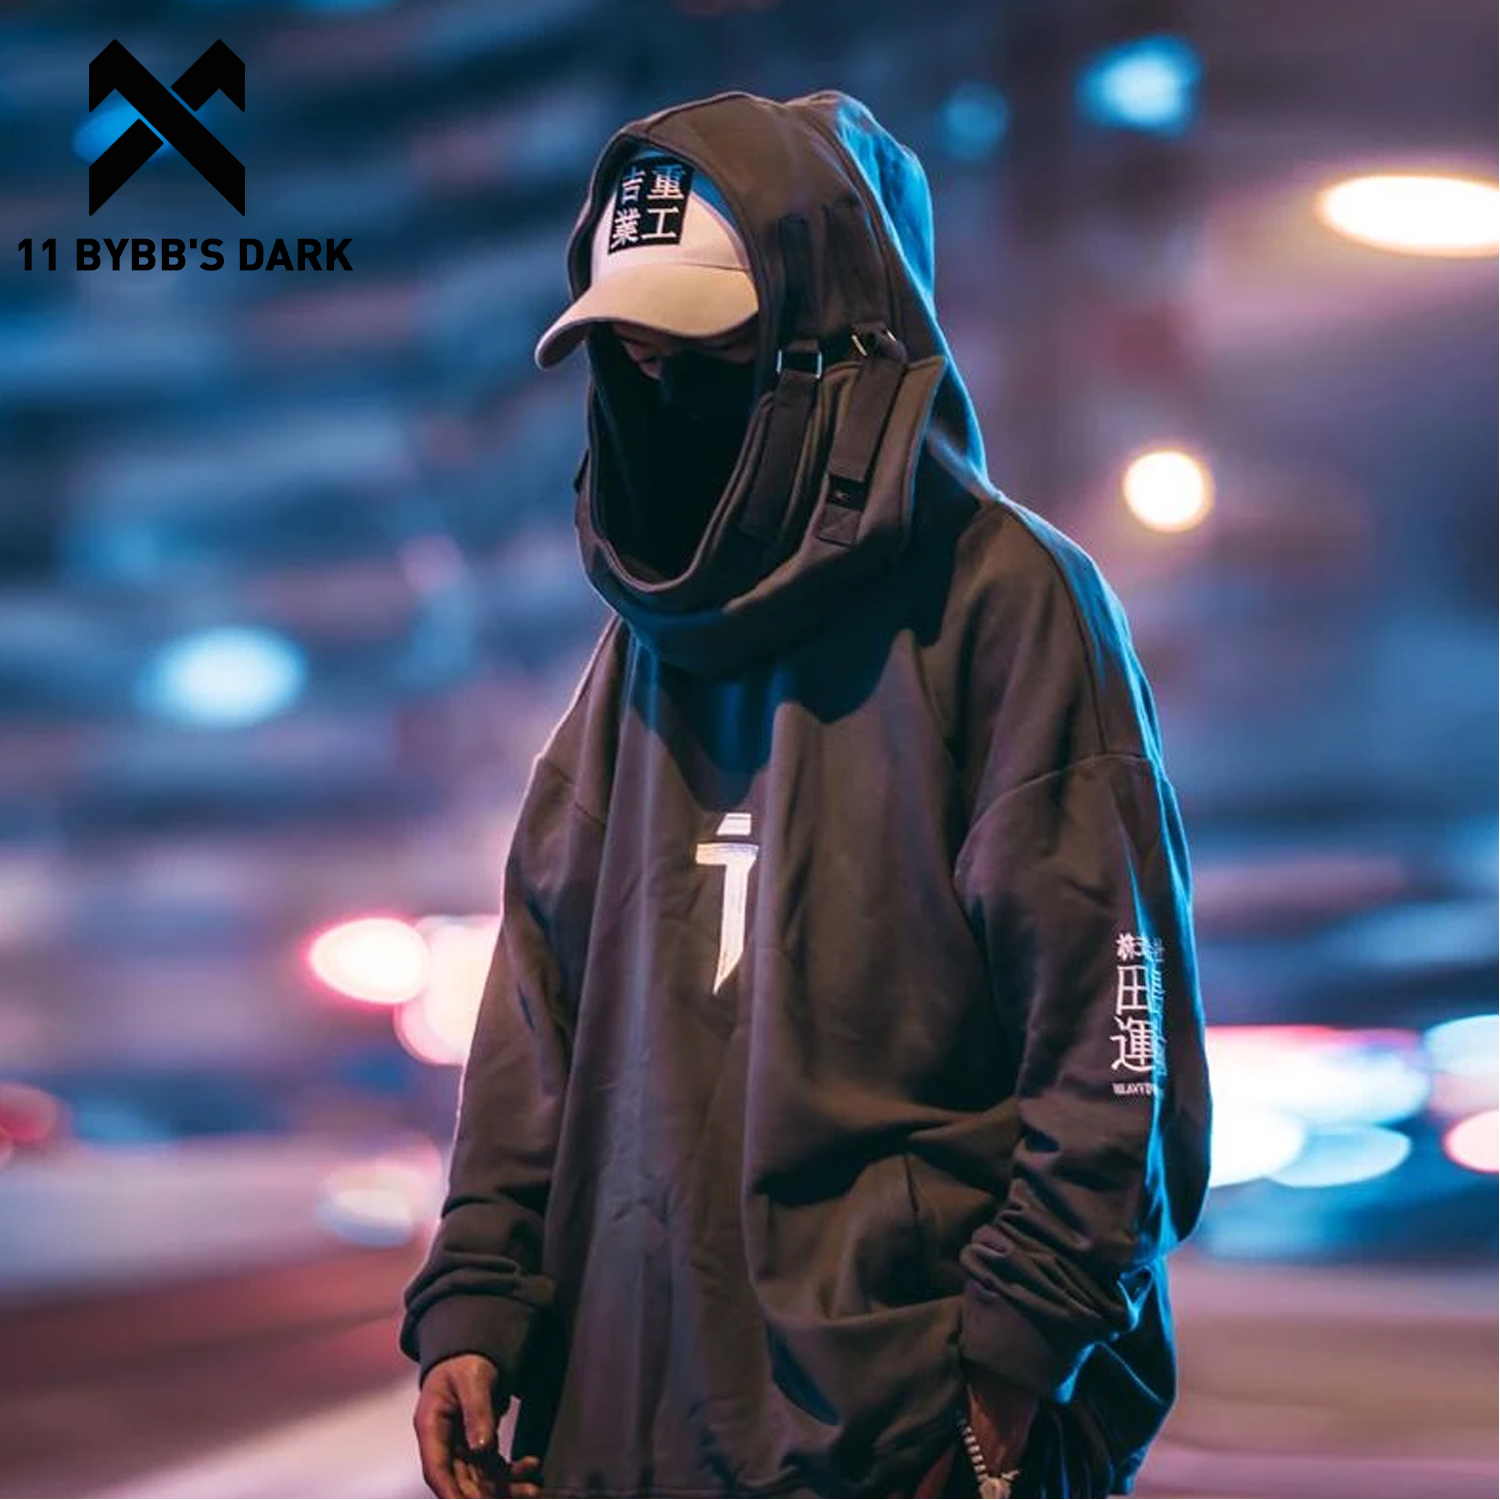 11 BYBB'S DARK Japanese Streetwear Hoodie Men Harajuku Neck Fish Mouth Pullovers Oversized Sweatshirts Hip Hop Hoodie Techwear